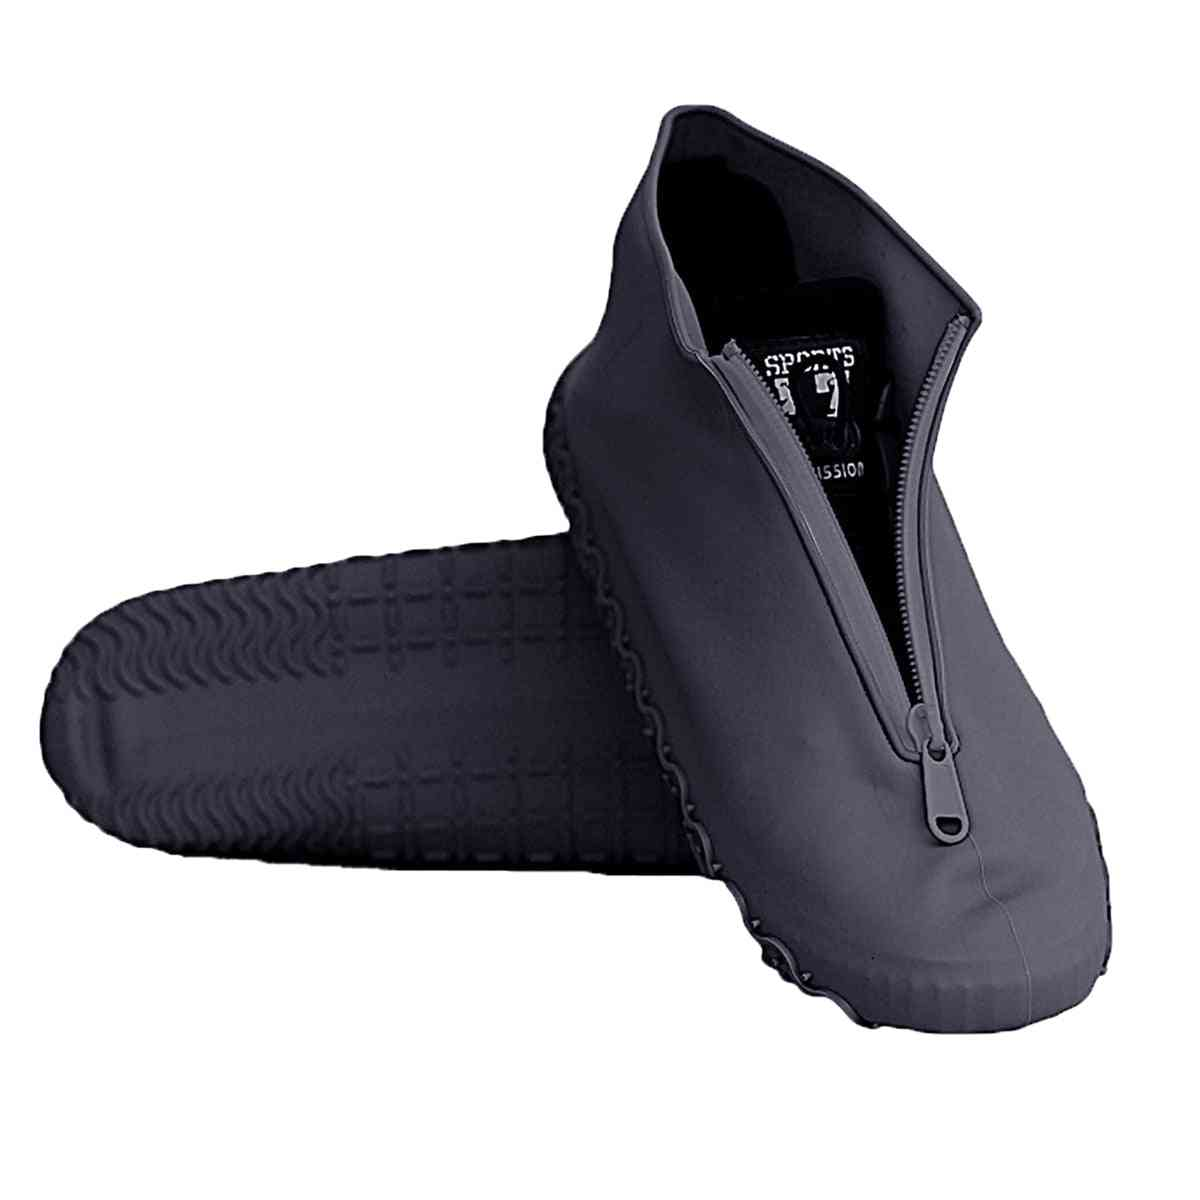 Anti Rain Emulsion Shoe Cover With Zipper, Portable, Reusable, Thick Sole, Waterproof Foot Wear Accessories, Protective Outdoor